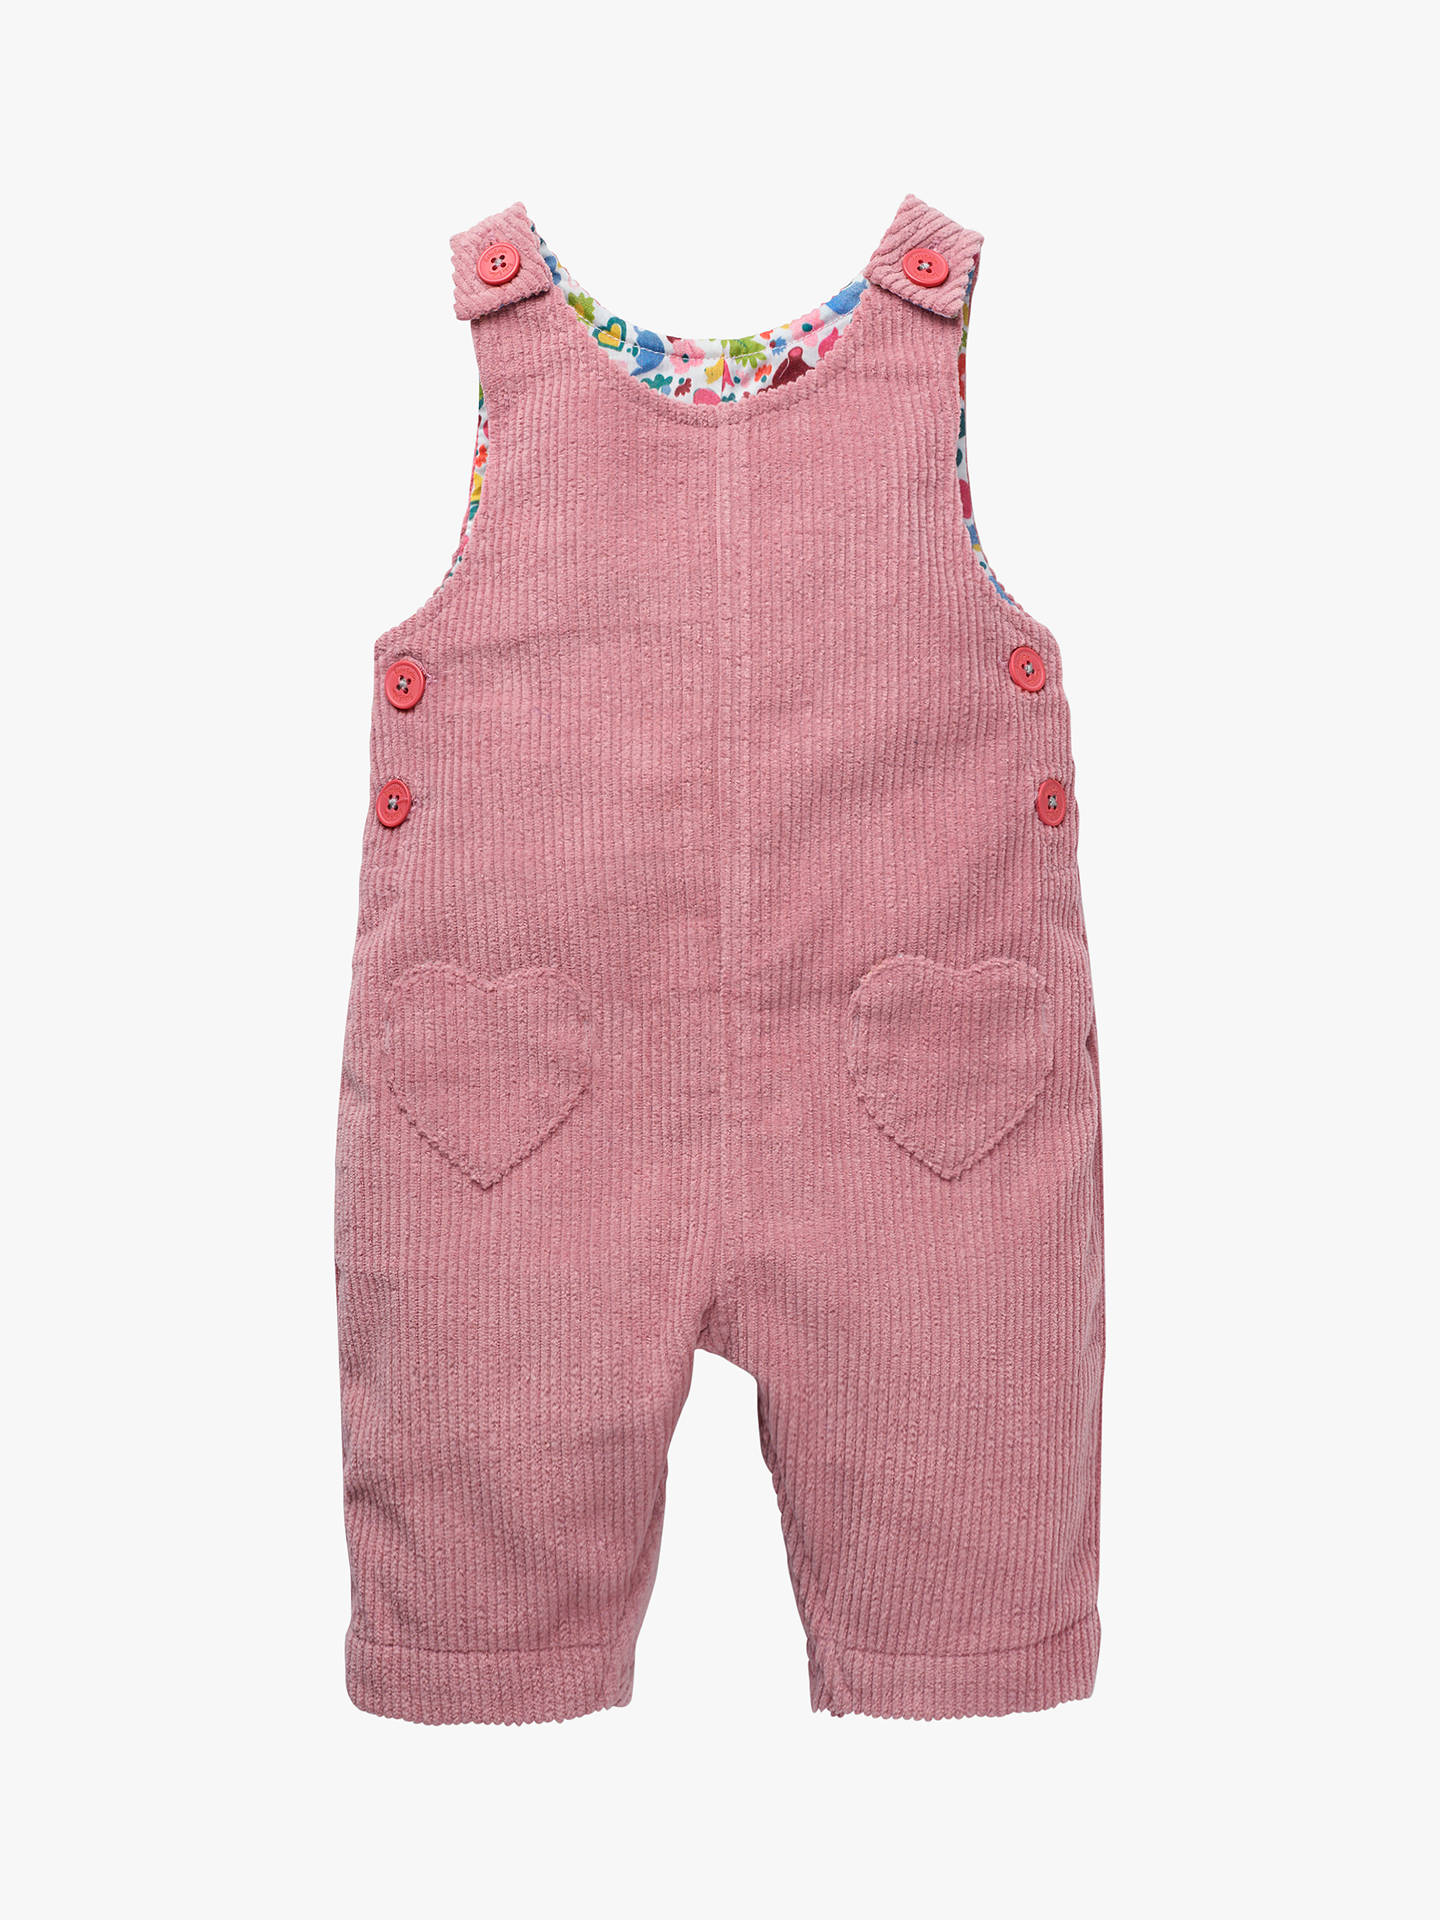 Mini Boden Baby Cord Playsuit Vintage Pink At John Lewis Partners